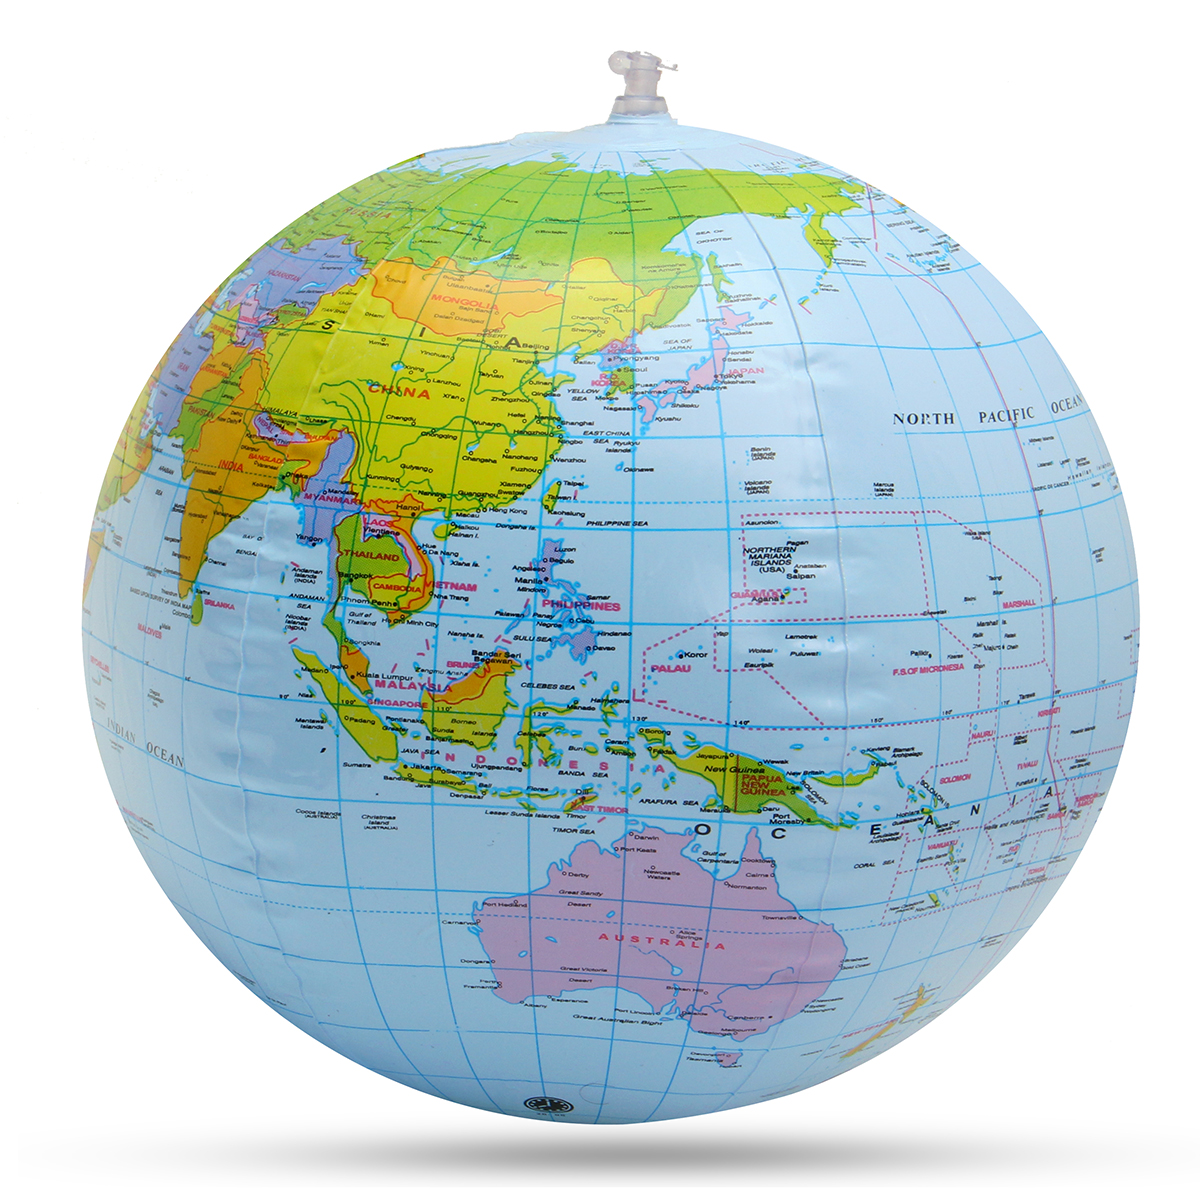 Inflatable Globe World Earth Ocean Map Beach Ball Geography Learning Educational Beach Ball Kids Toy Home Office Decoration